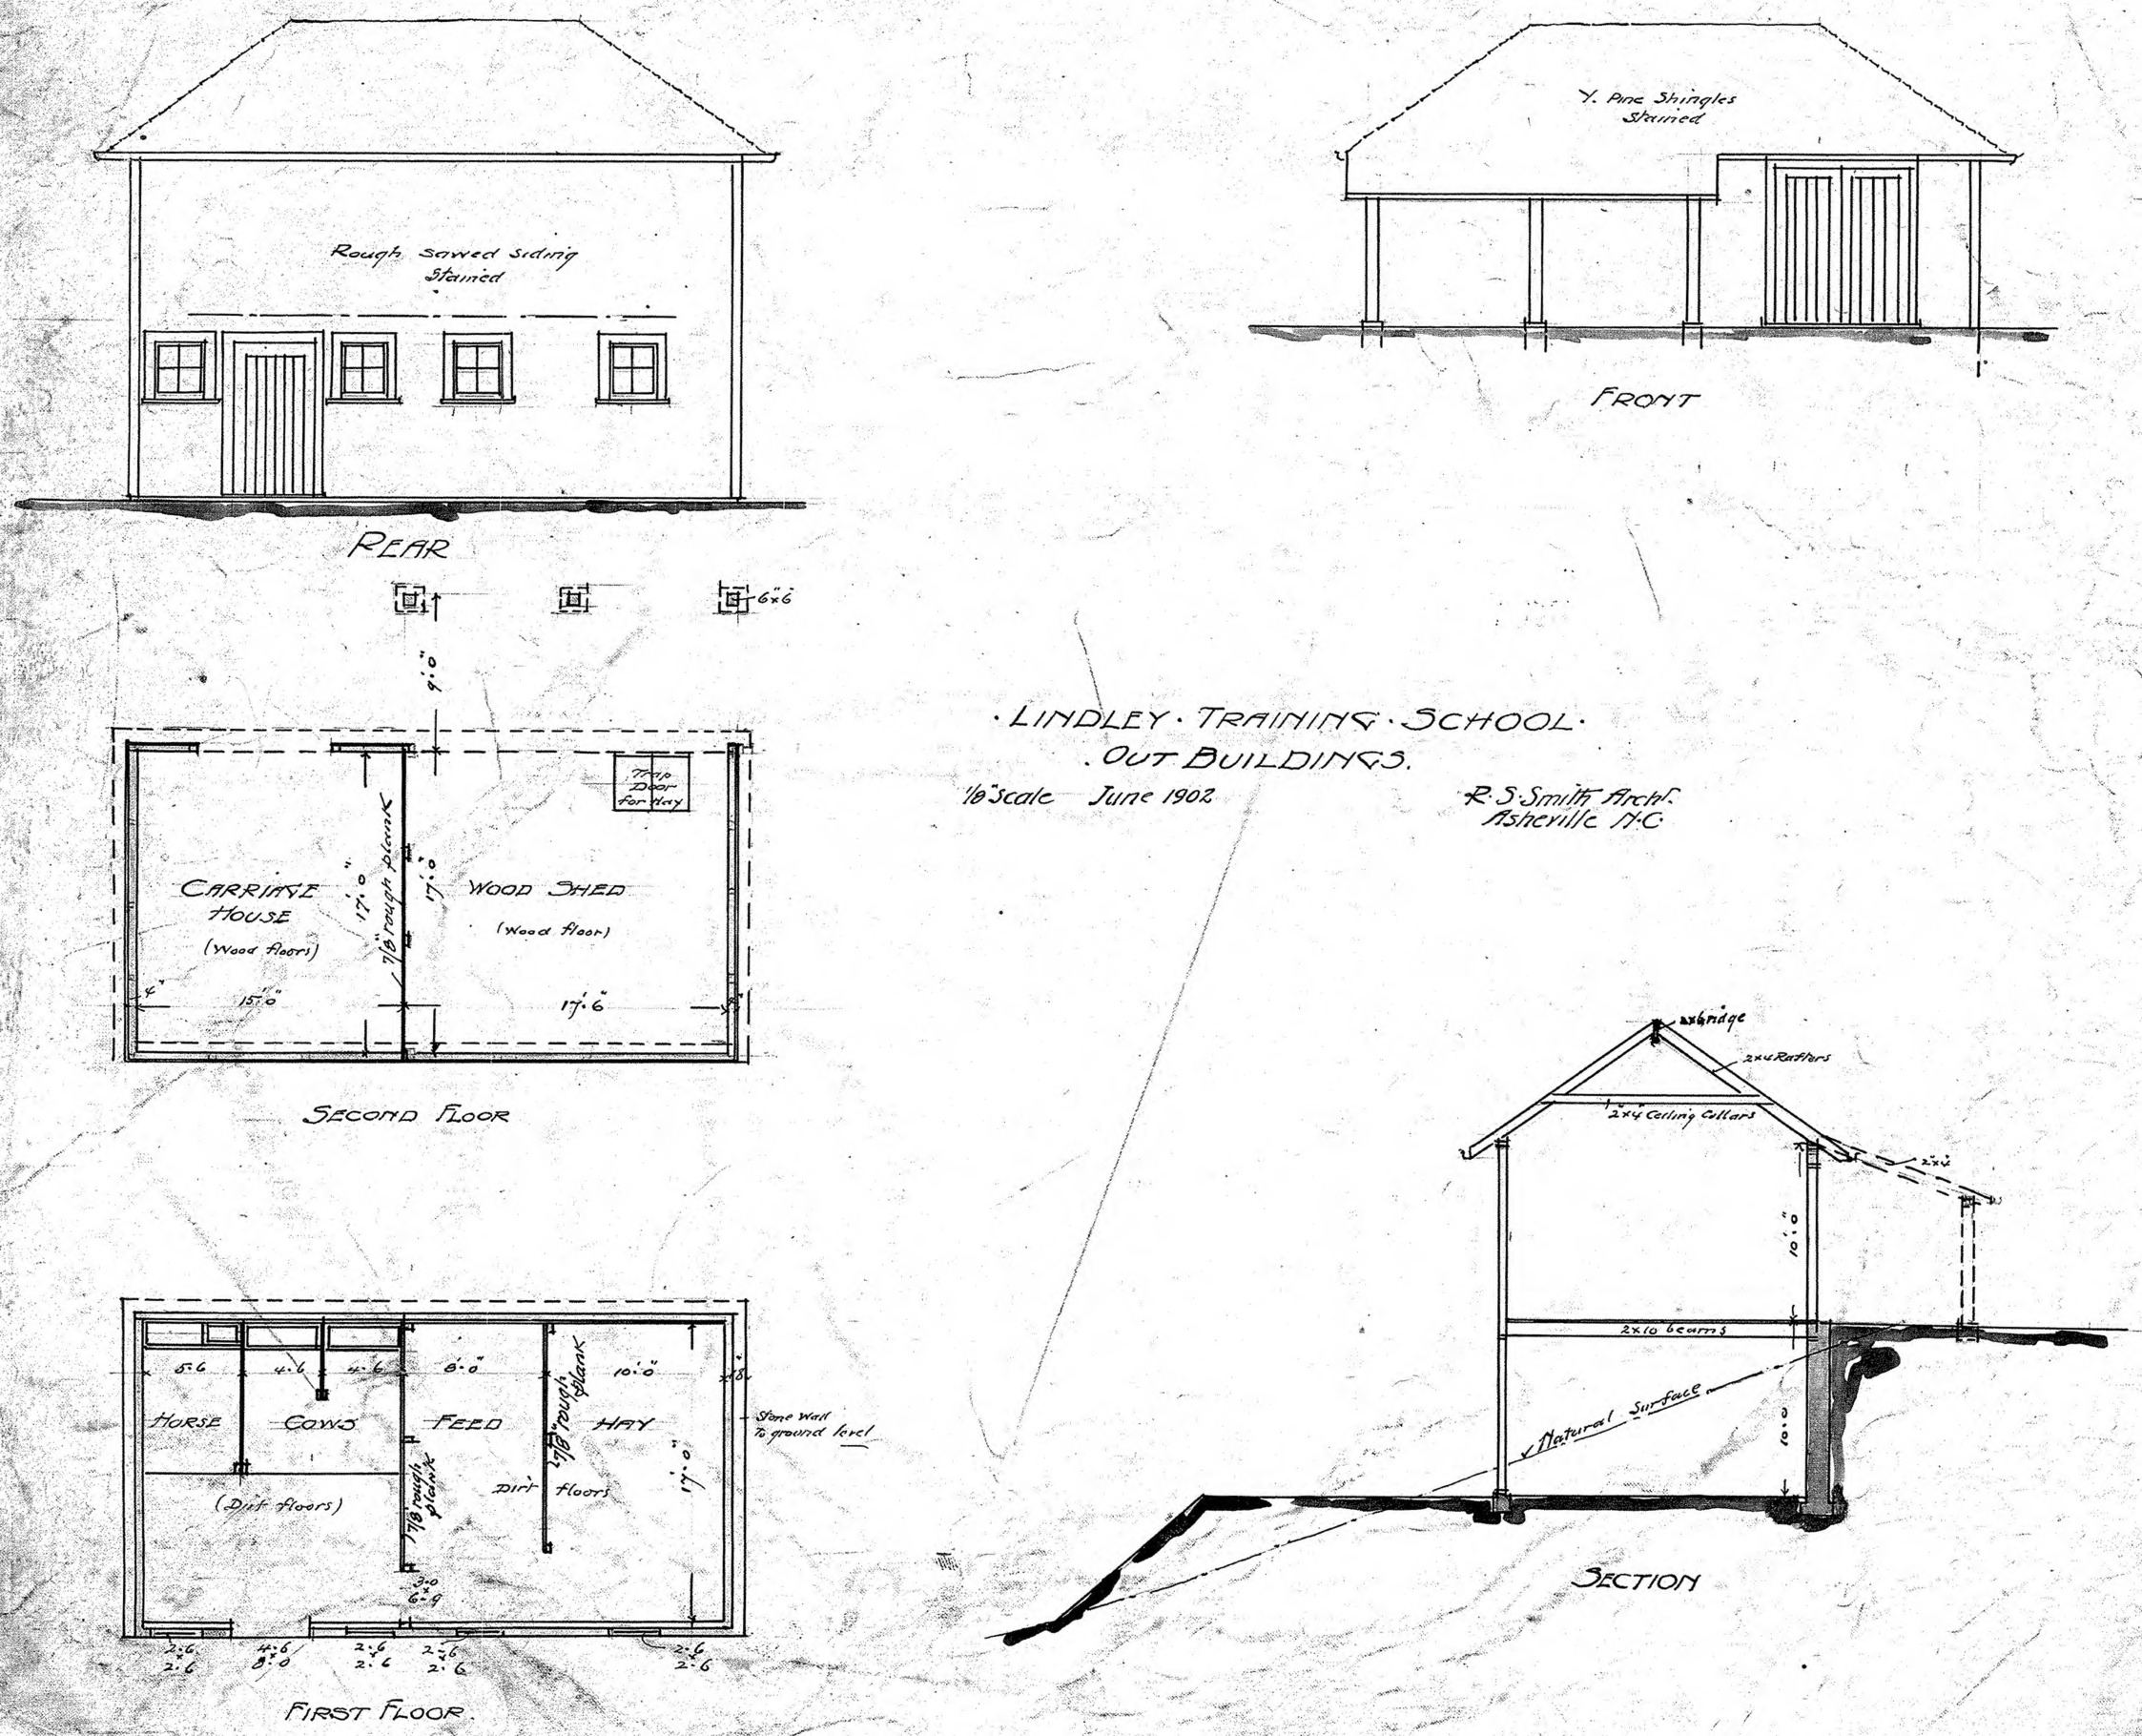 Elevation Plan And Cross Section : Section elevation plan